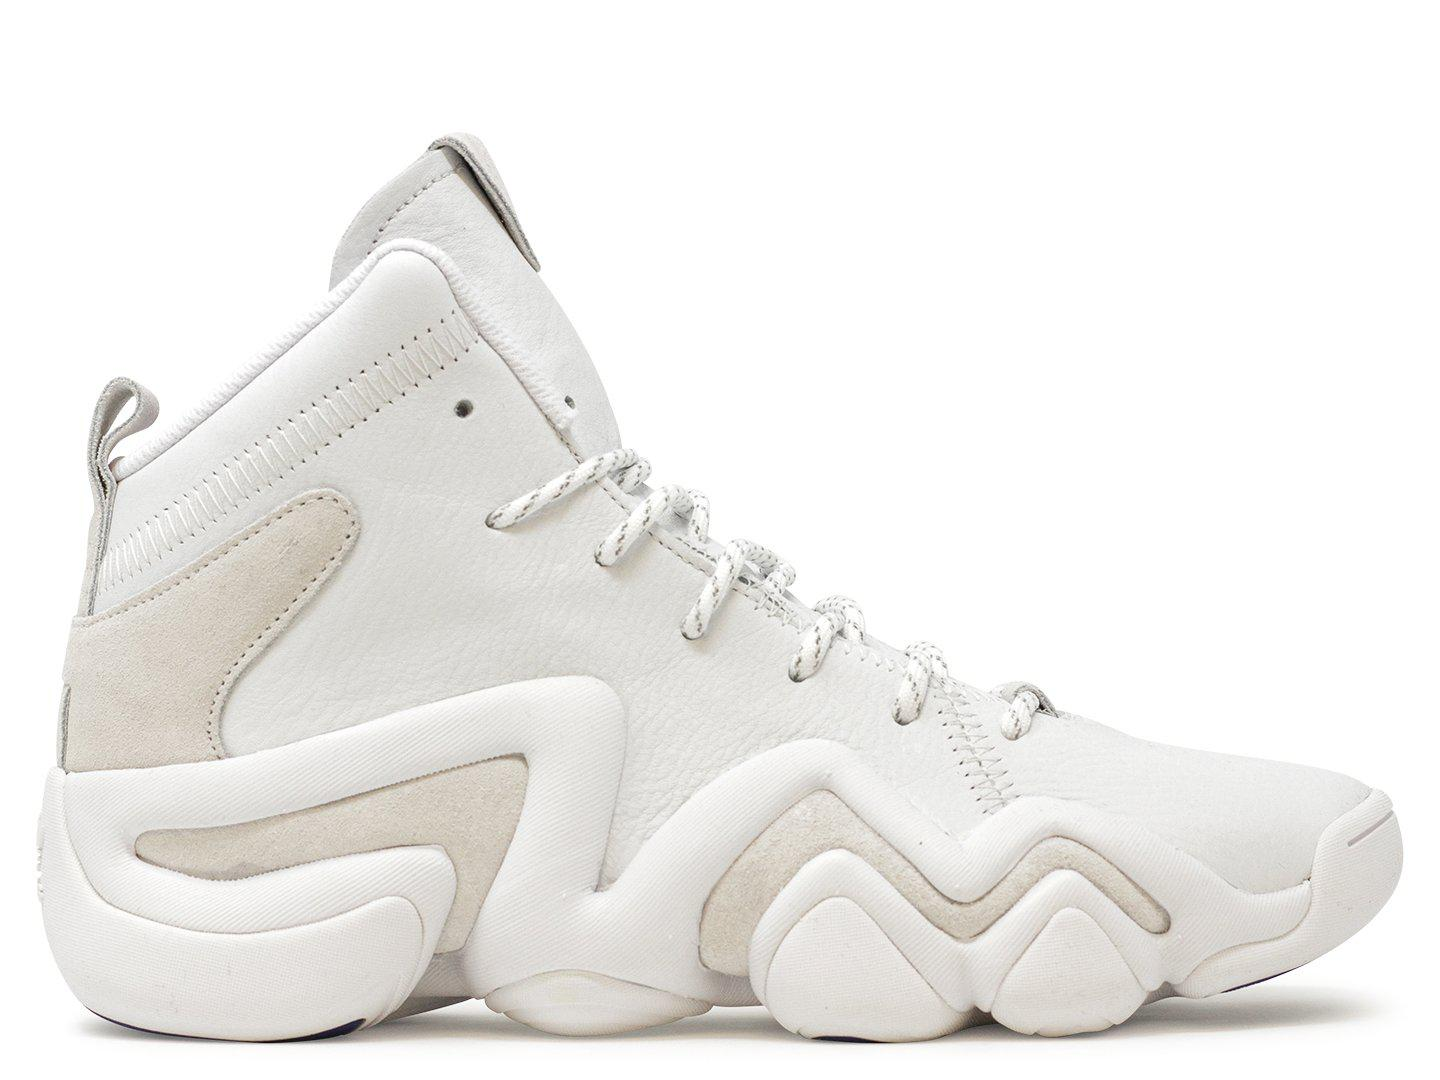 best cheap b4e91 23c3a ... Official Images Lyst - Adidas Originals Crazy 8 Adv (asw) in White for  Men ...